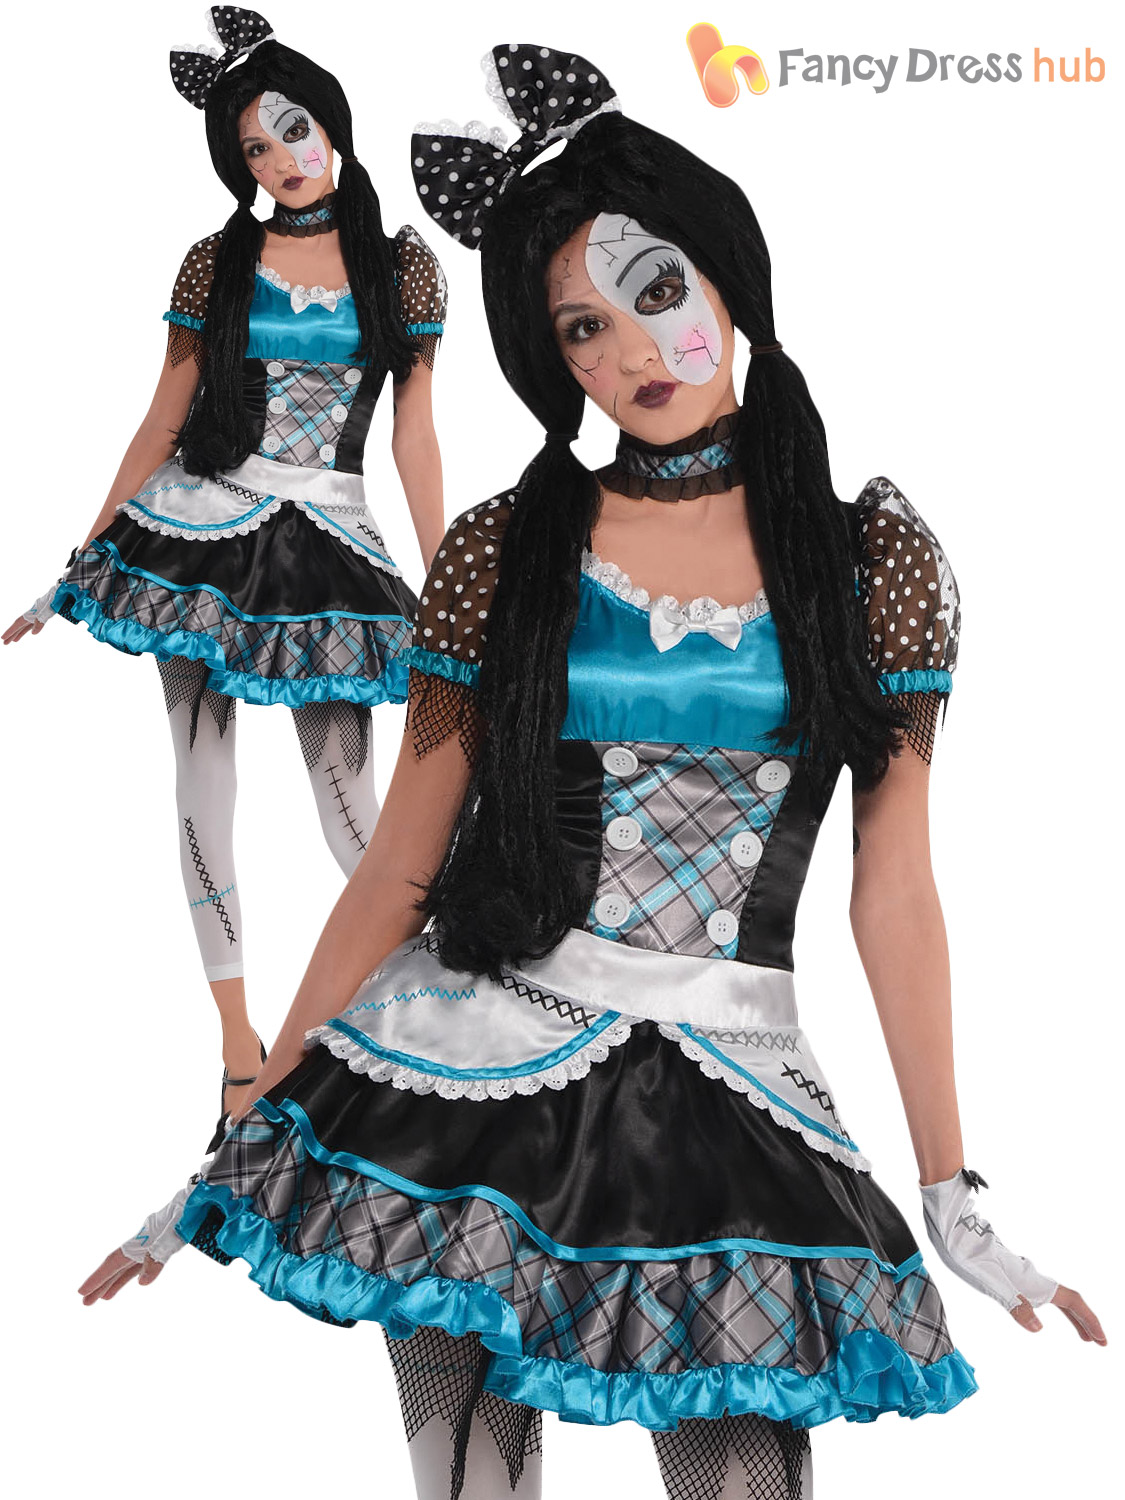 Halloween Zombie Costumes For Girls.Details About Girls Broken Doll Costume Teen Halloween Fancy Dress Kids Shattered Zombie Doll